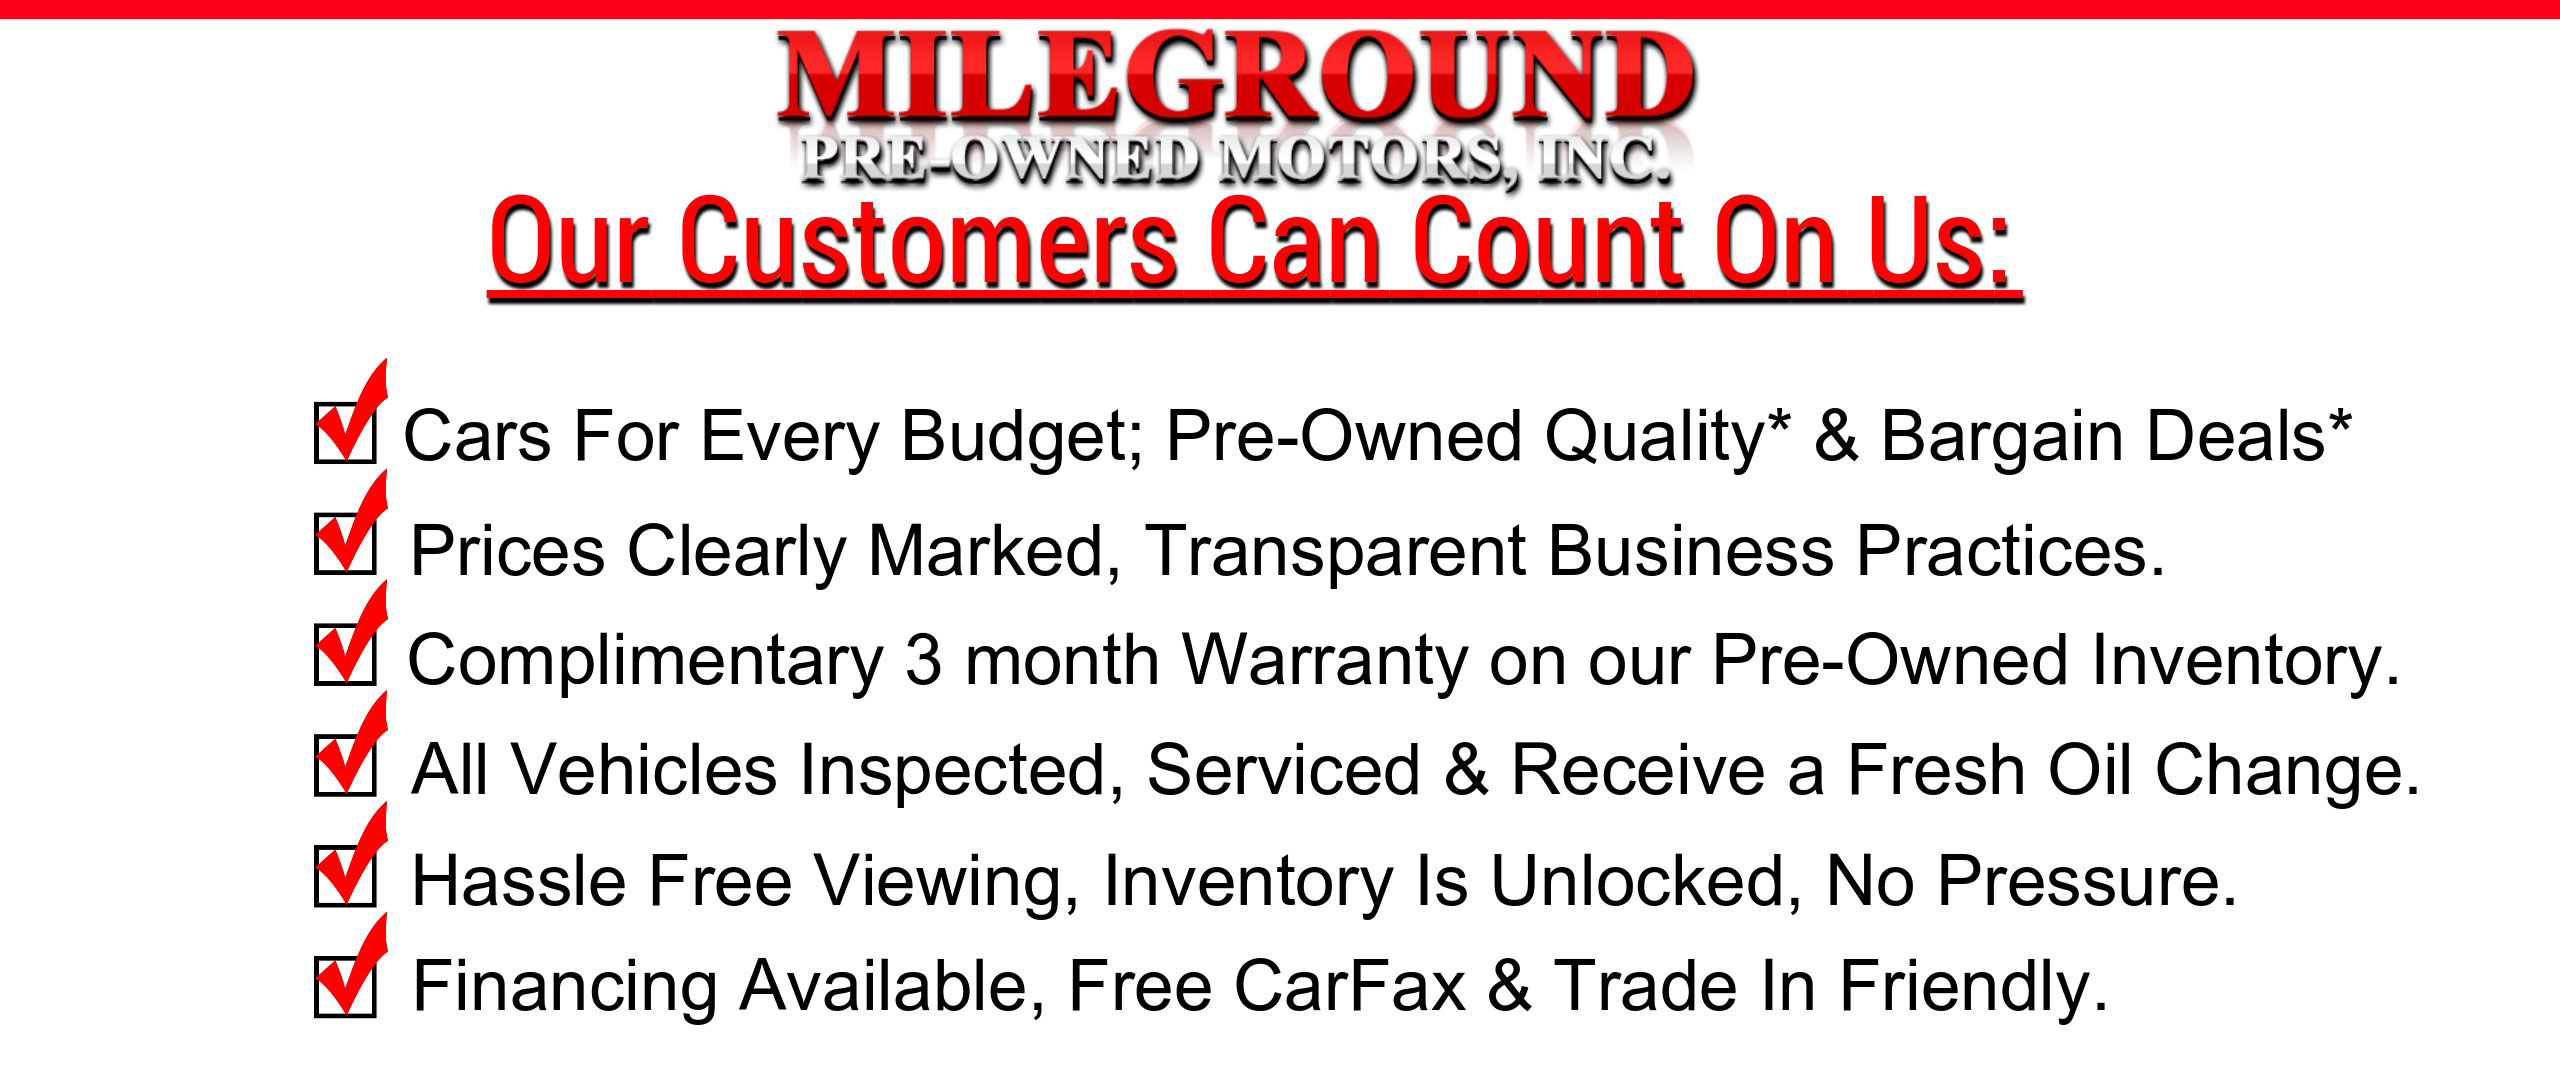 Mieground Pre-Owned Motors